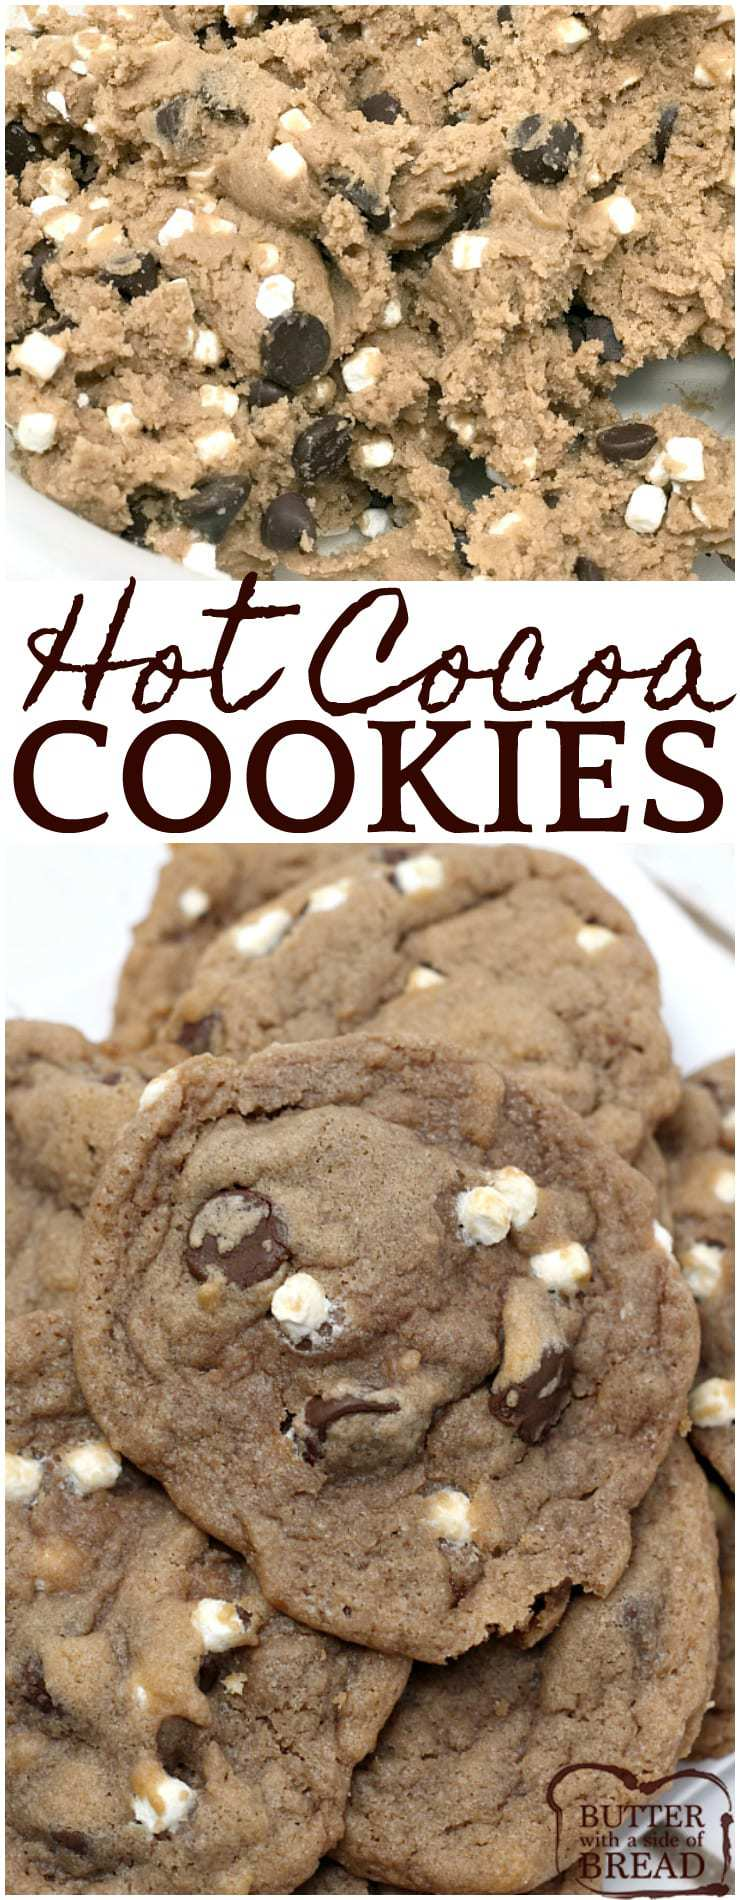 Hot Cocoa Cookies are the perfect winter treat combination with hot cocoa, #chocolate, and #marshmallow bits all baked into one delicious #cookie! Insanely delicious cookie #recipe from Butter With A Side of Bread